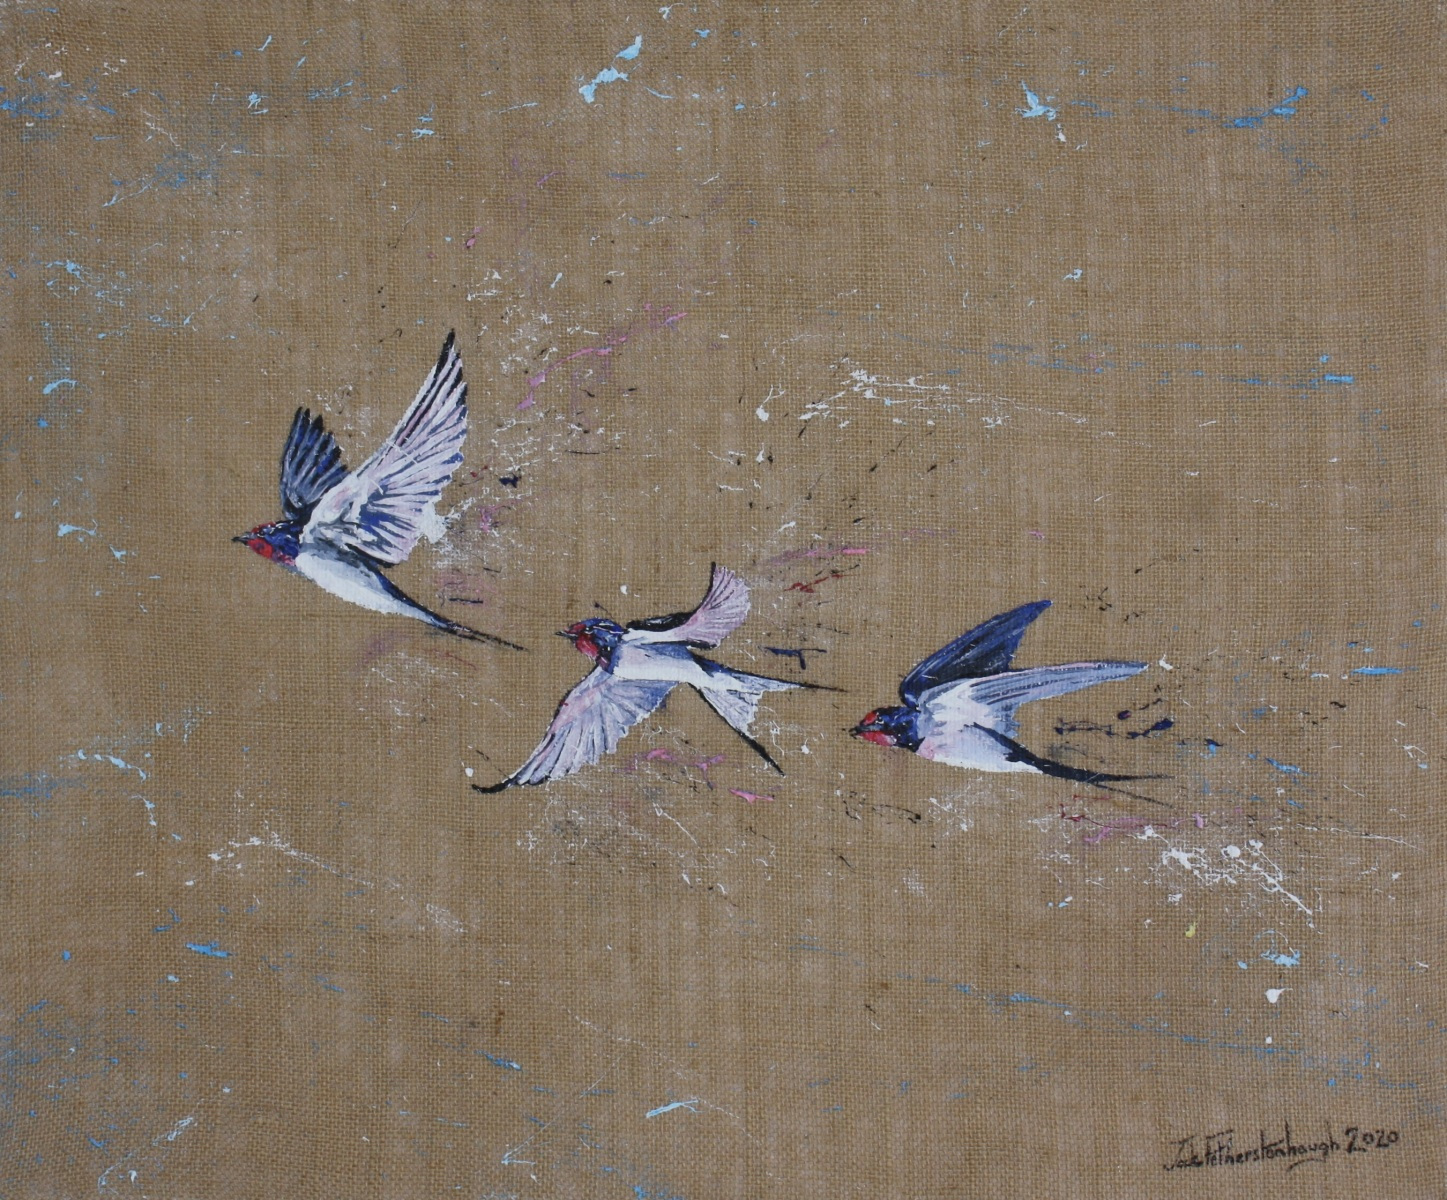 """JACK FETHERSTONHAUGH   TRIO OF SWALLOWS   ACRYLIC ON HESSIAN   50 x 60cm   £1,150<br /><a class=""""buy-button"""" href=""""mailto:info@dacre-art.com?subject=Website%20Enquiry"""">Enquire</a>"""